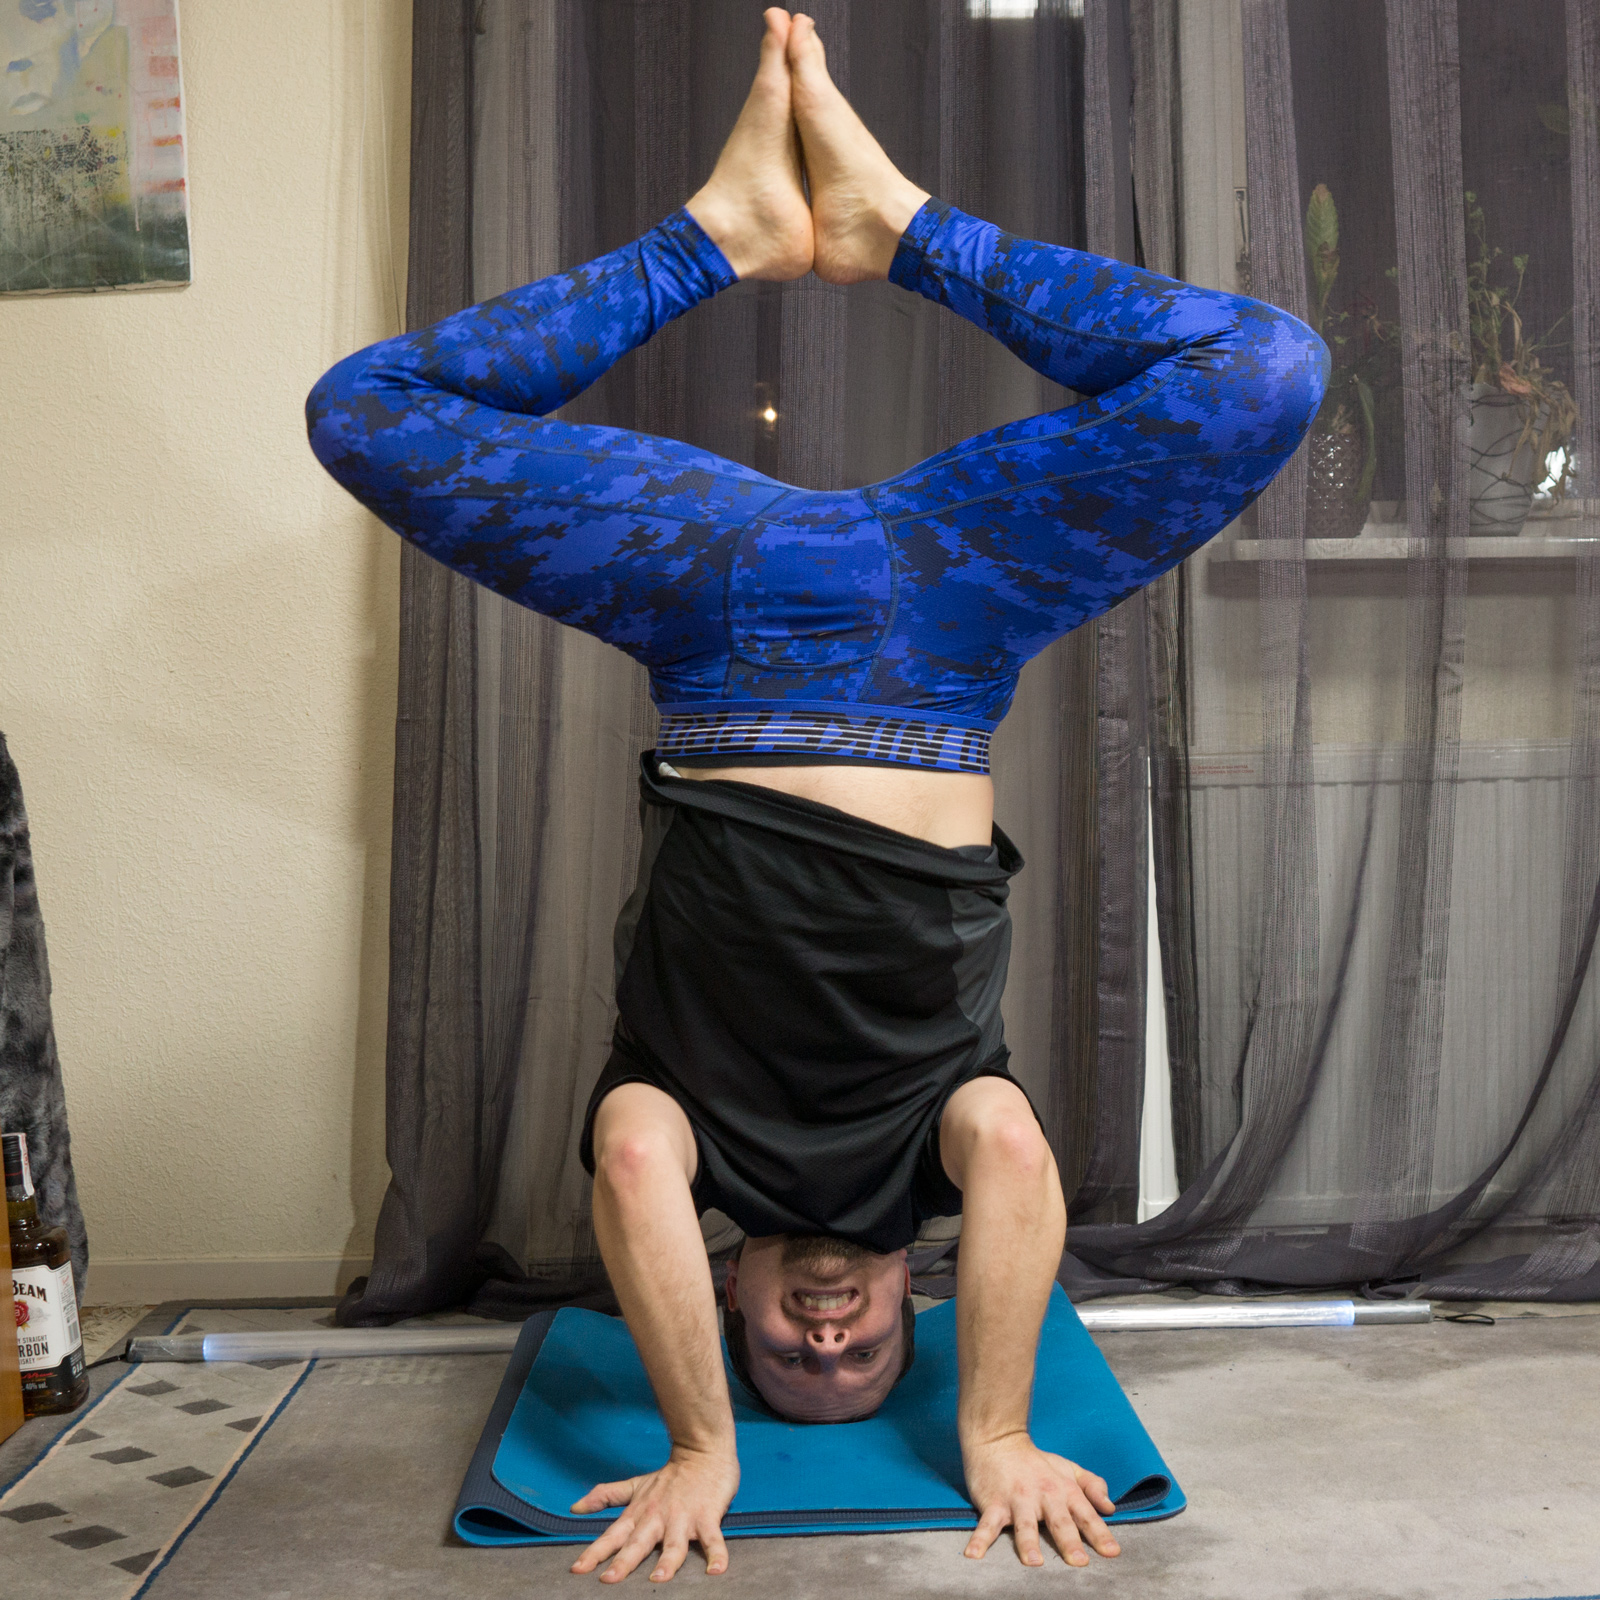 Bound Angle Pose in March 26th 2018. The week starts with a  Mancrushmonday, as the headstand variation with hands away from the face close together was really tough. I found that straddle pre